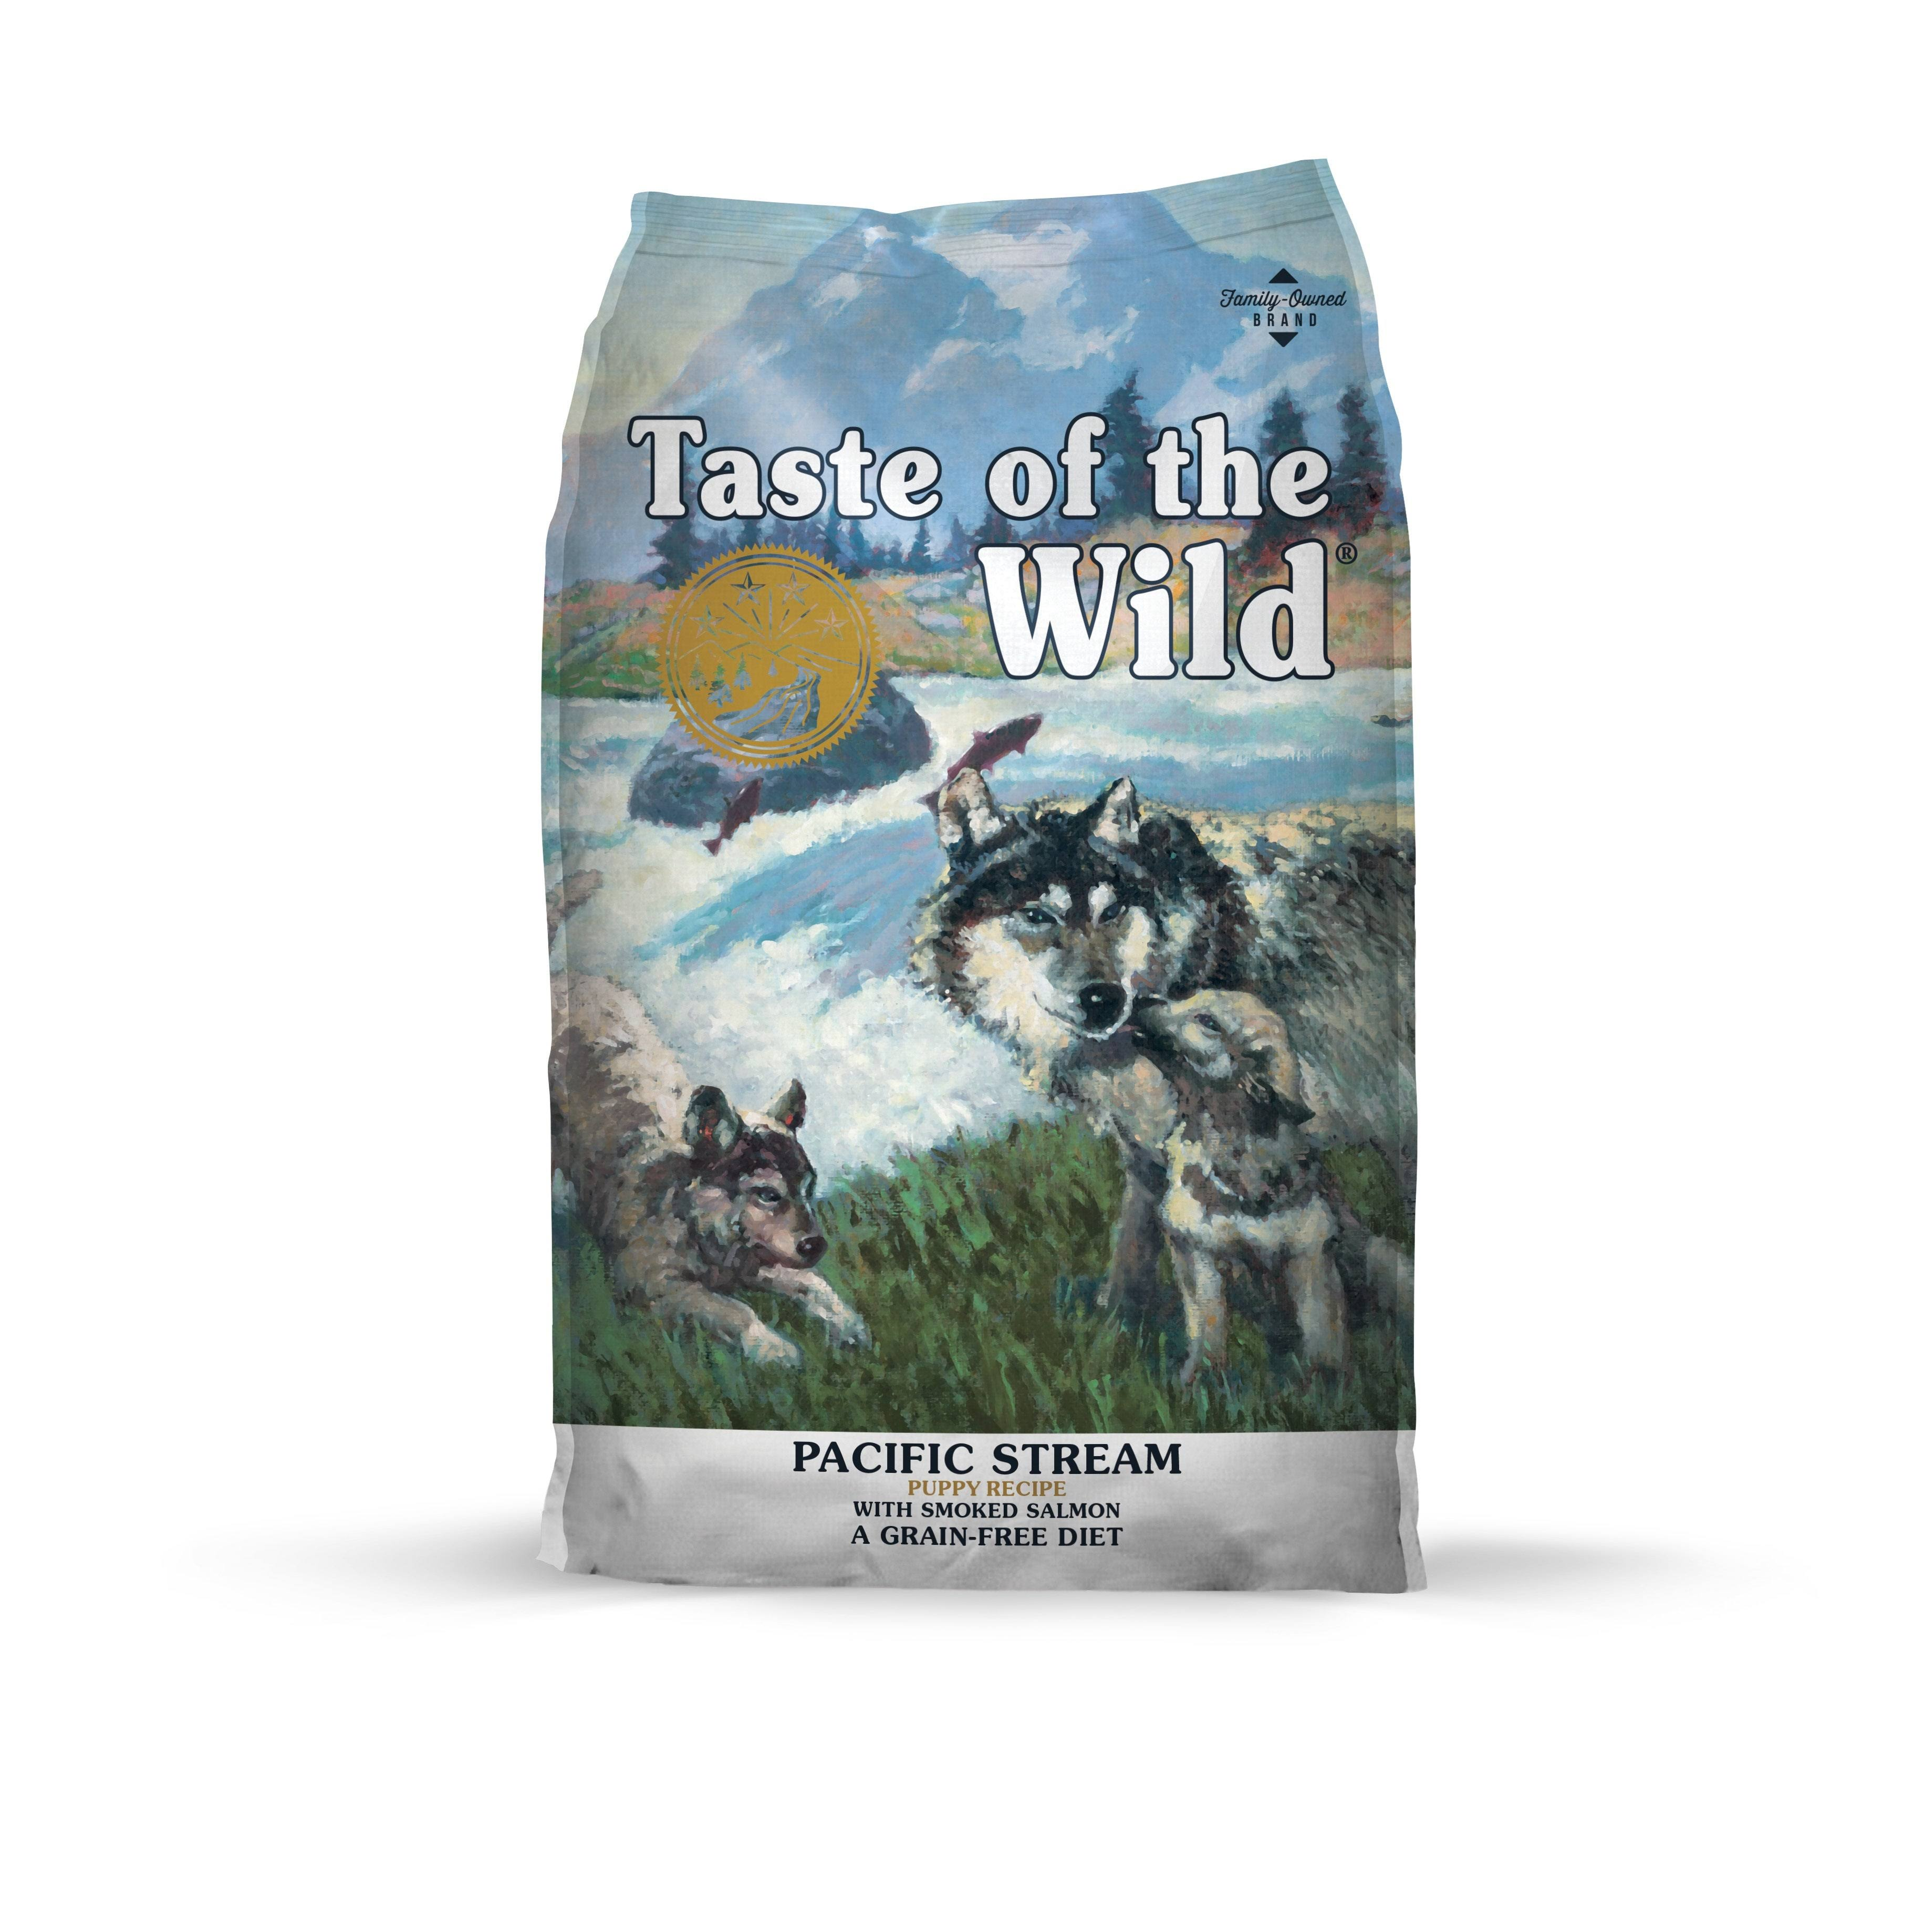 Taste of the Wild Pacific Stream Grain Free Puppy Food - Salmon